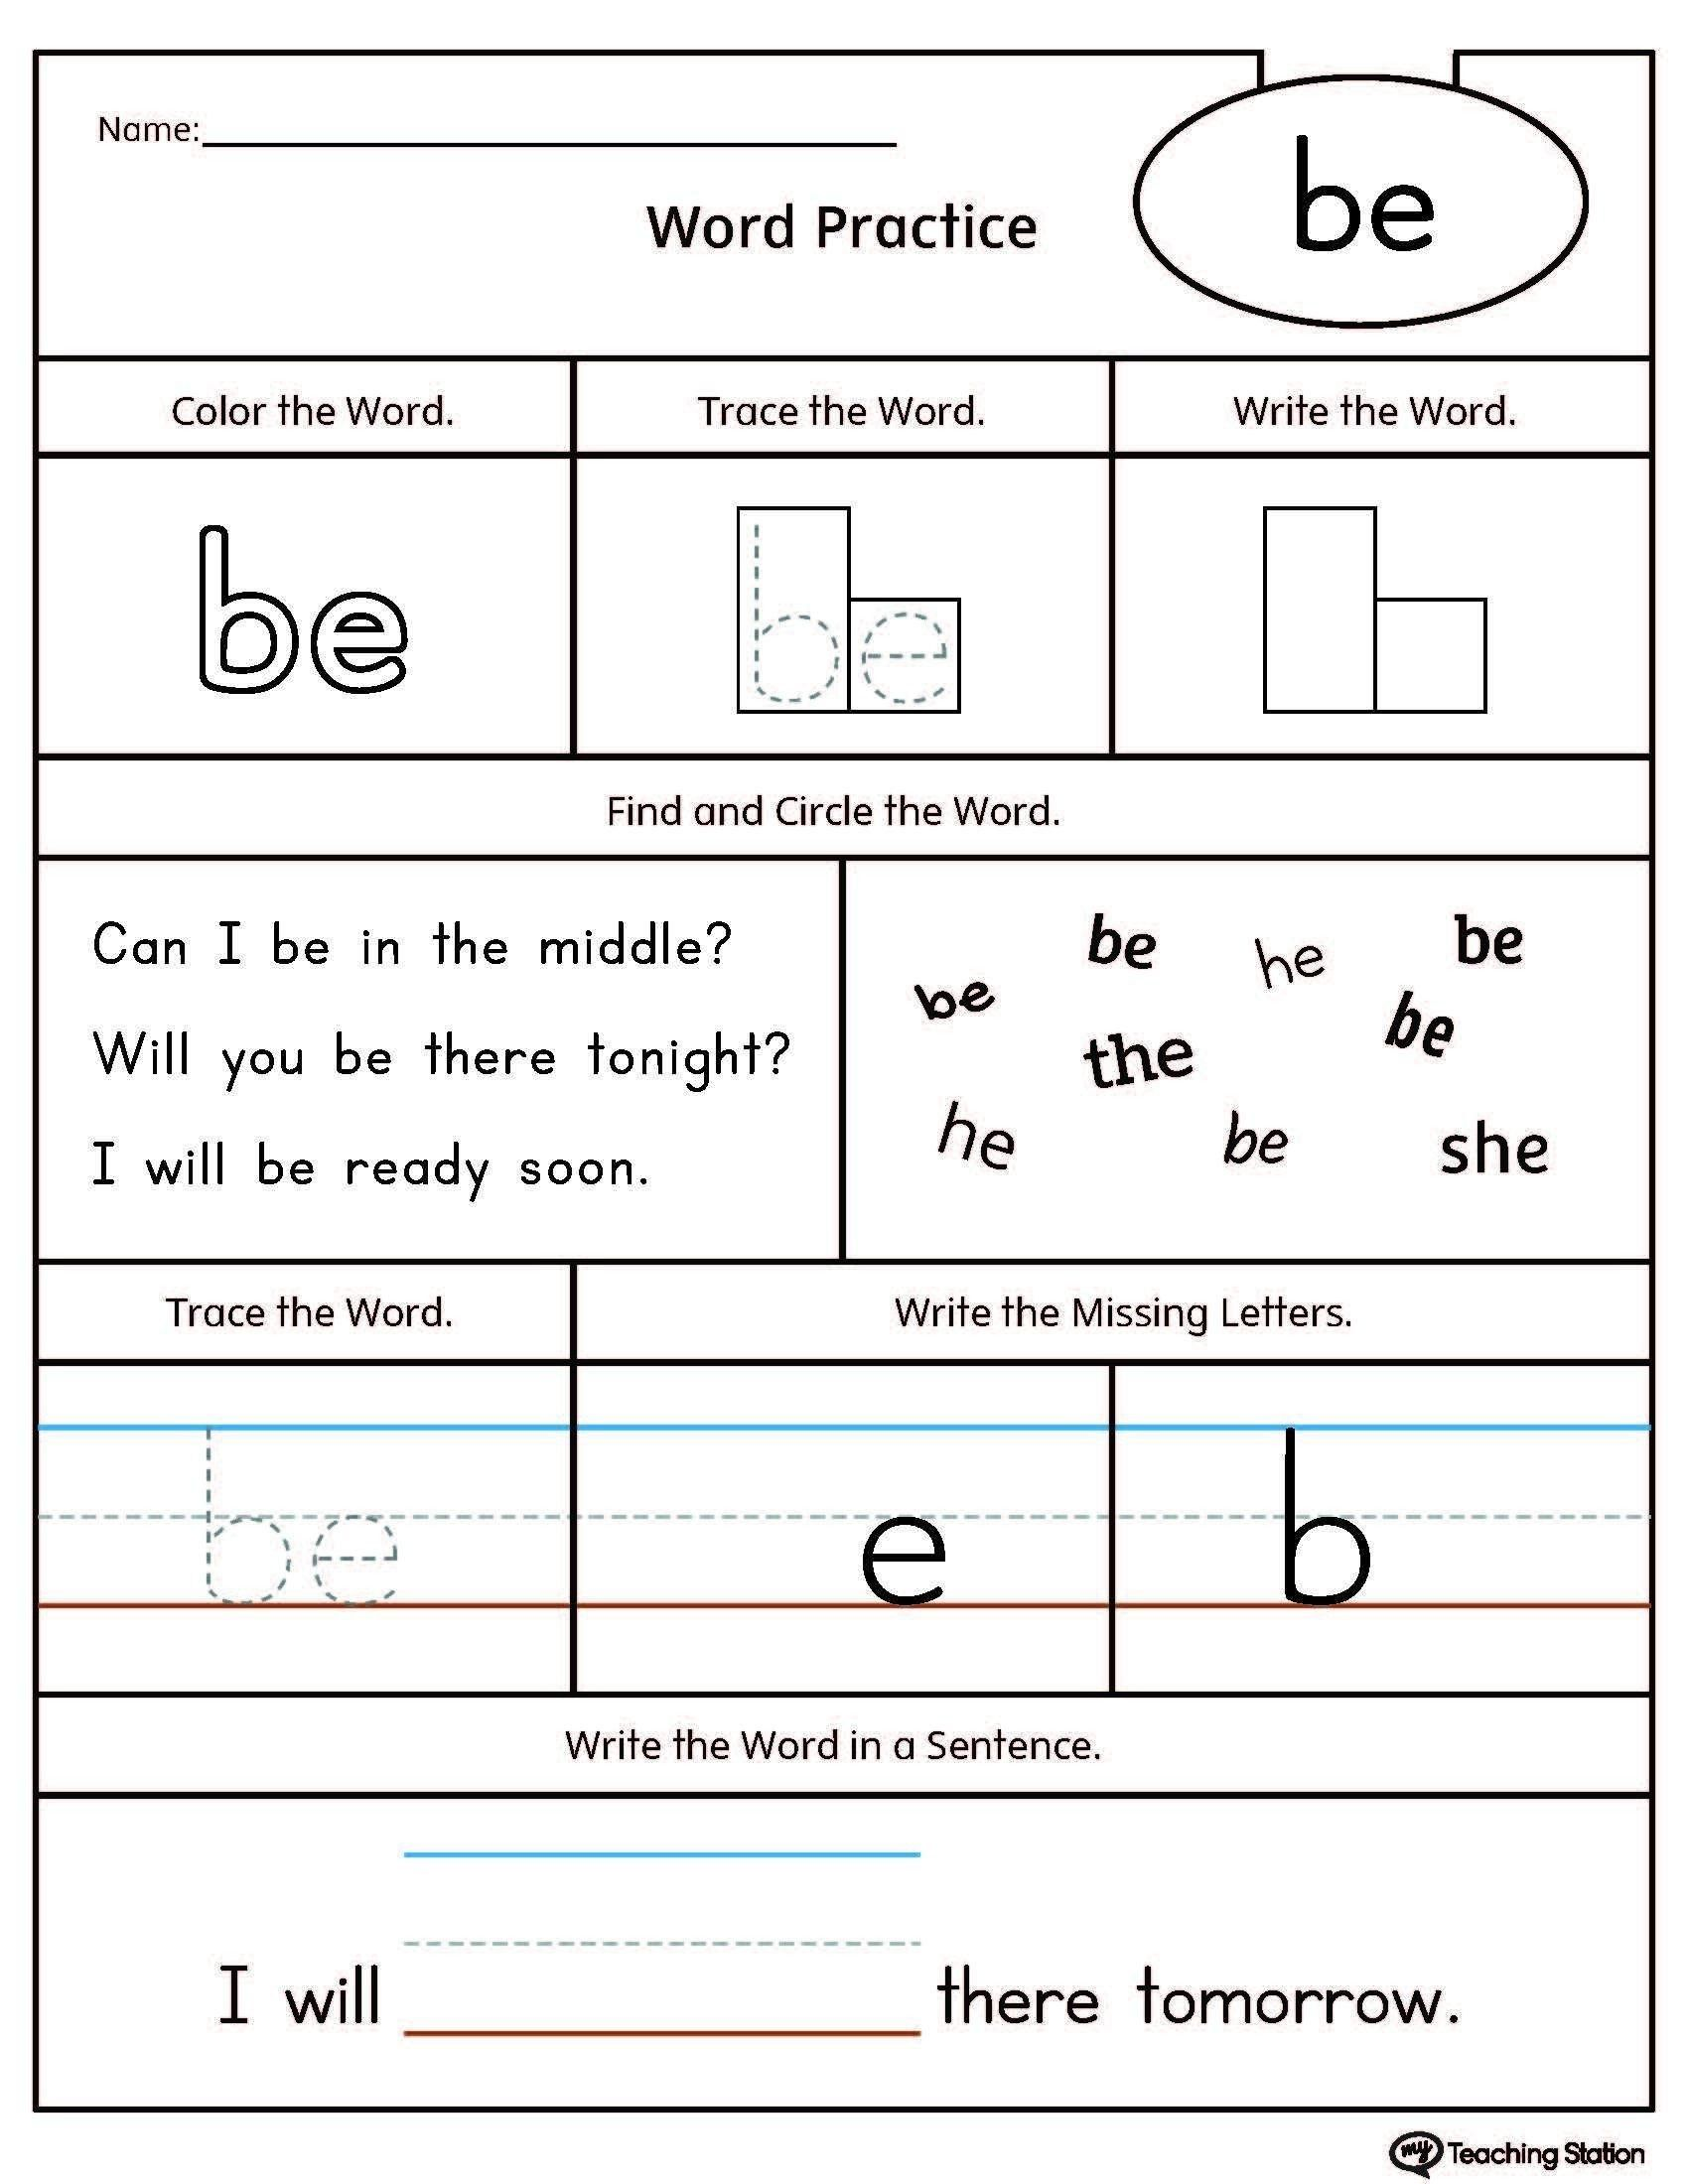 Word Tracing Worksheets For Kindergarten In